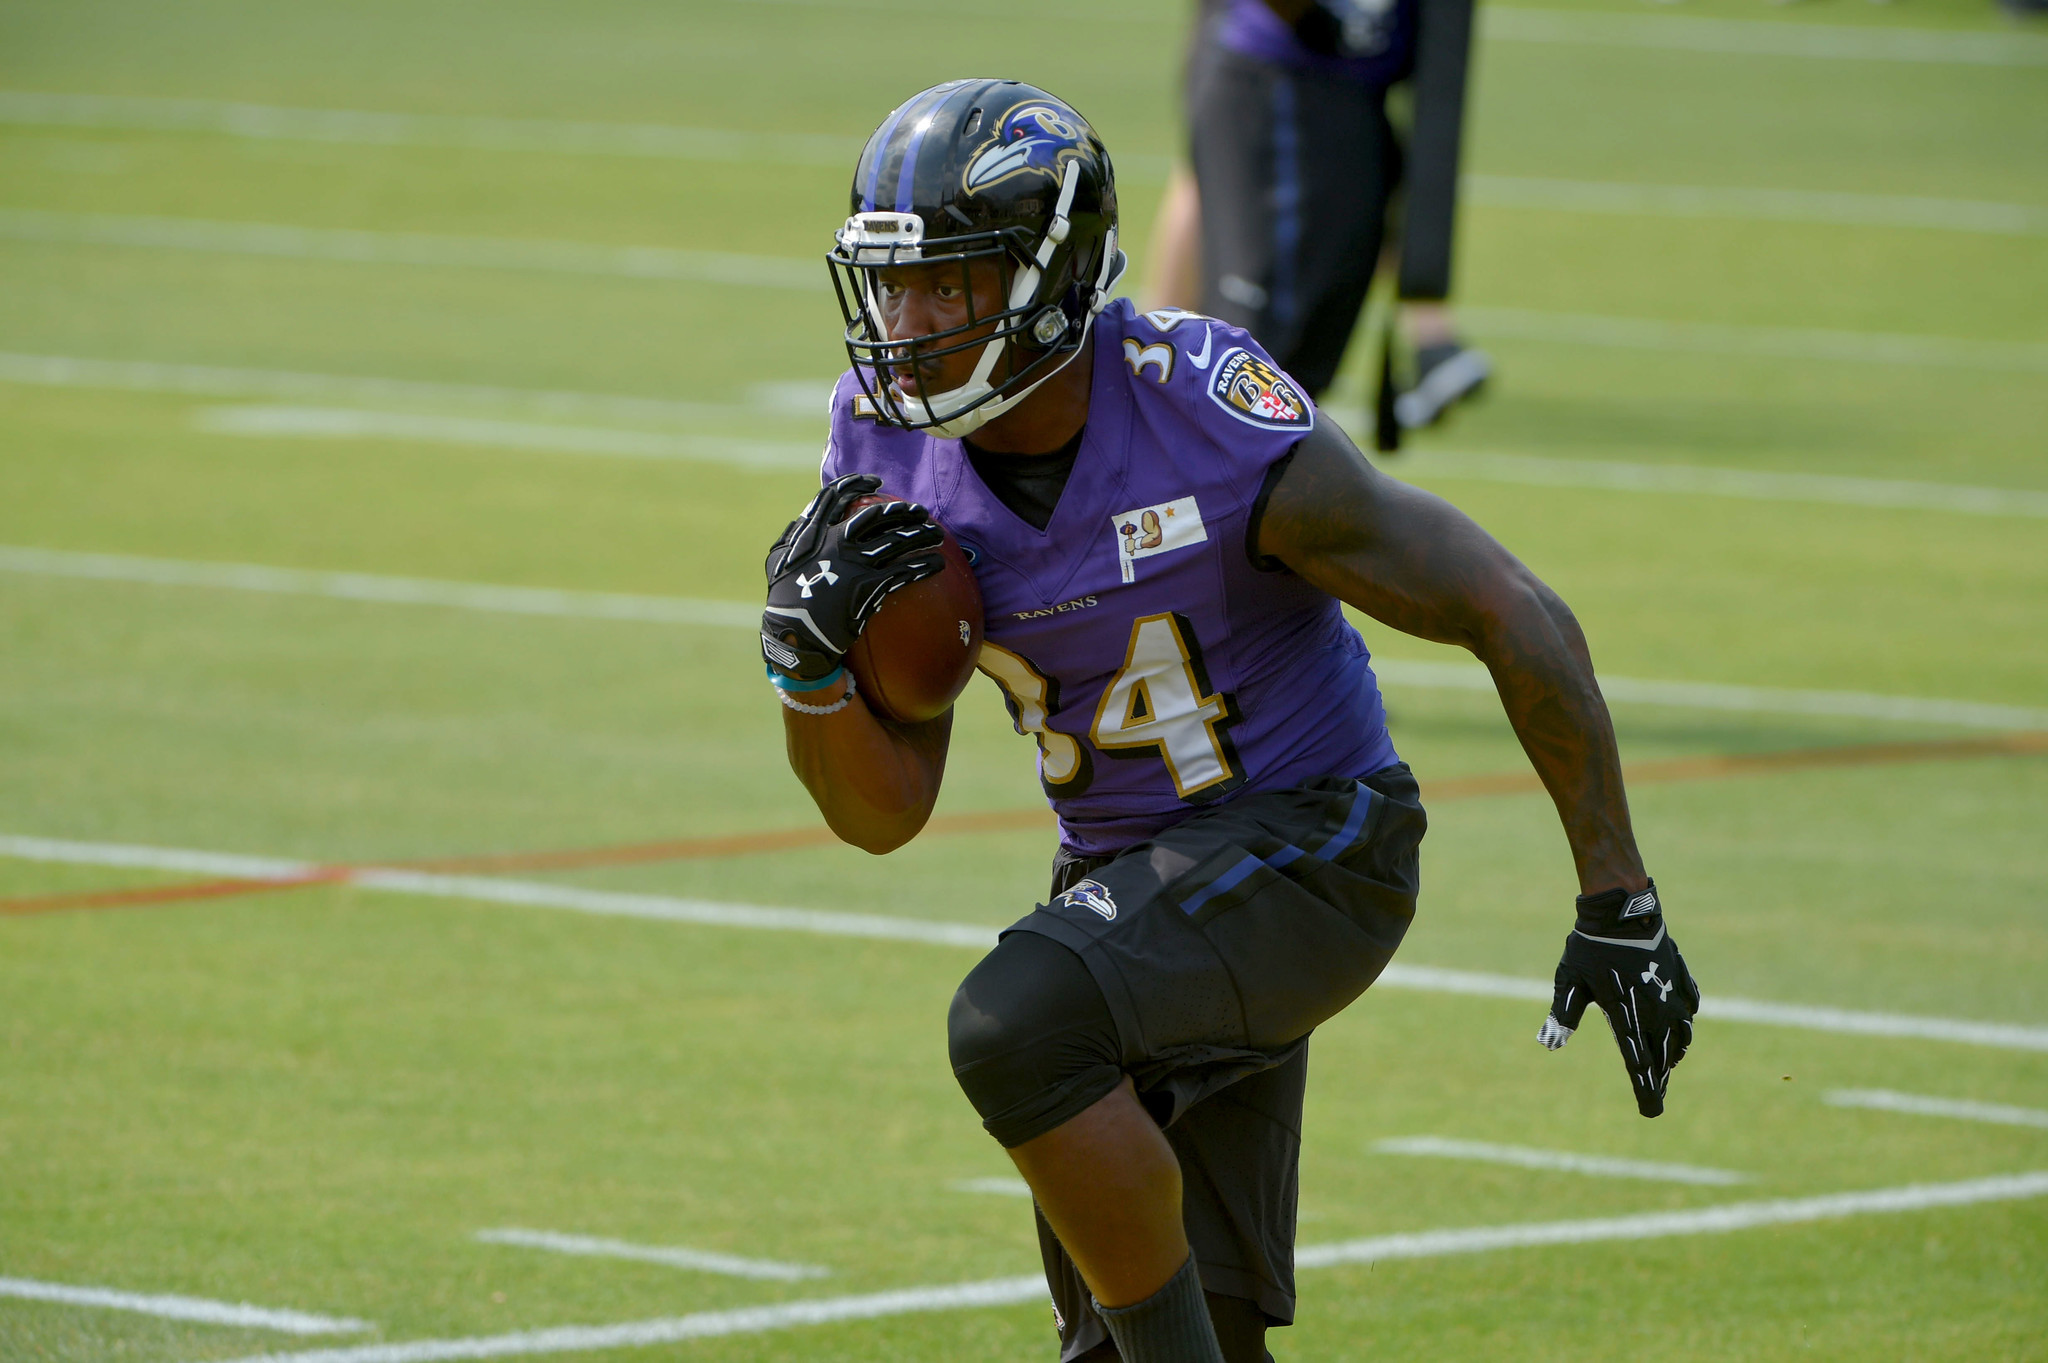 Bal-ravens-activate-lorenzo-taliaferro-place-kendrick-lewis-on-ir-in-series-of-roster-moves-20161022